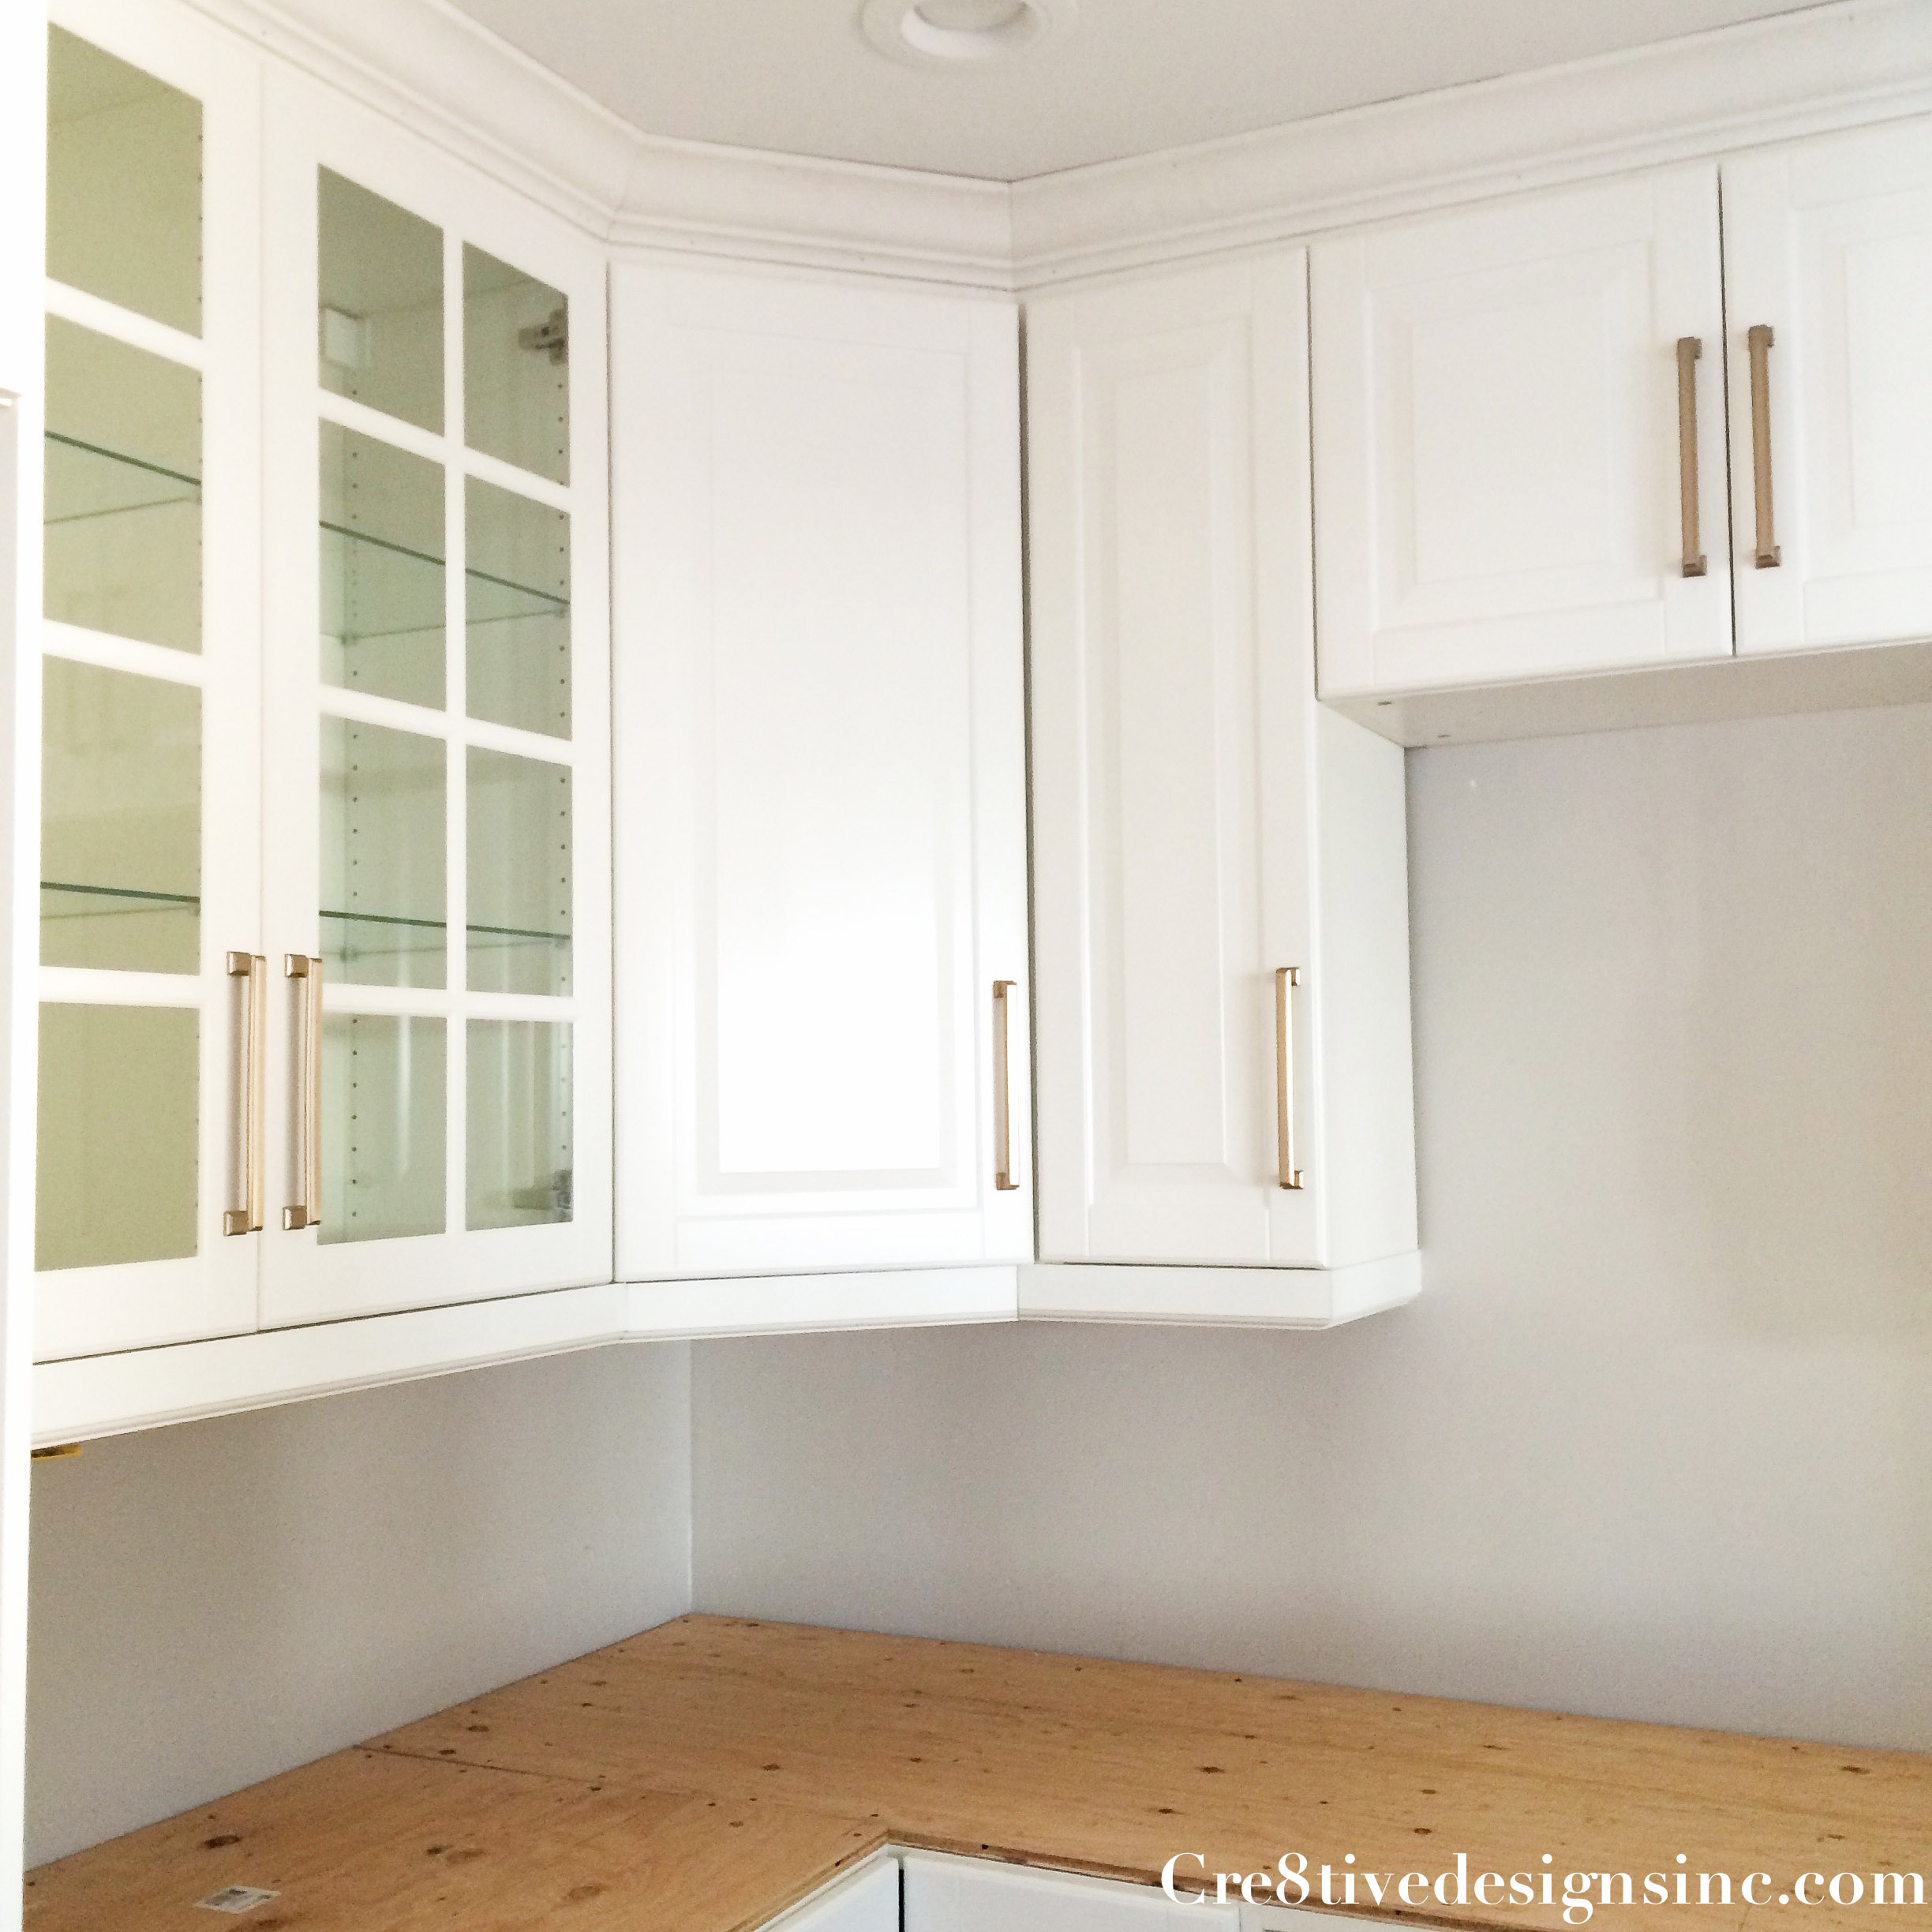 Kitchen remodel using Ikea Cabinets - Cre8tive Designs Inc.